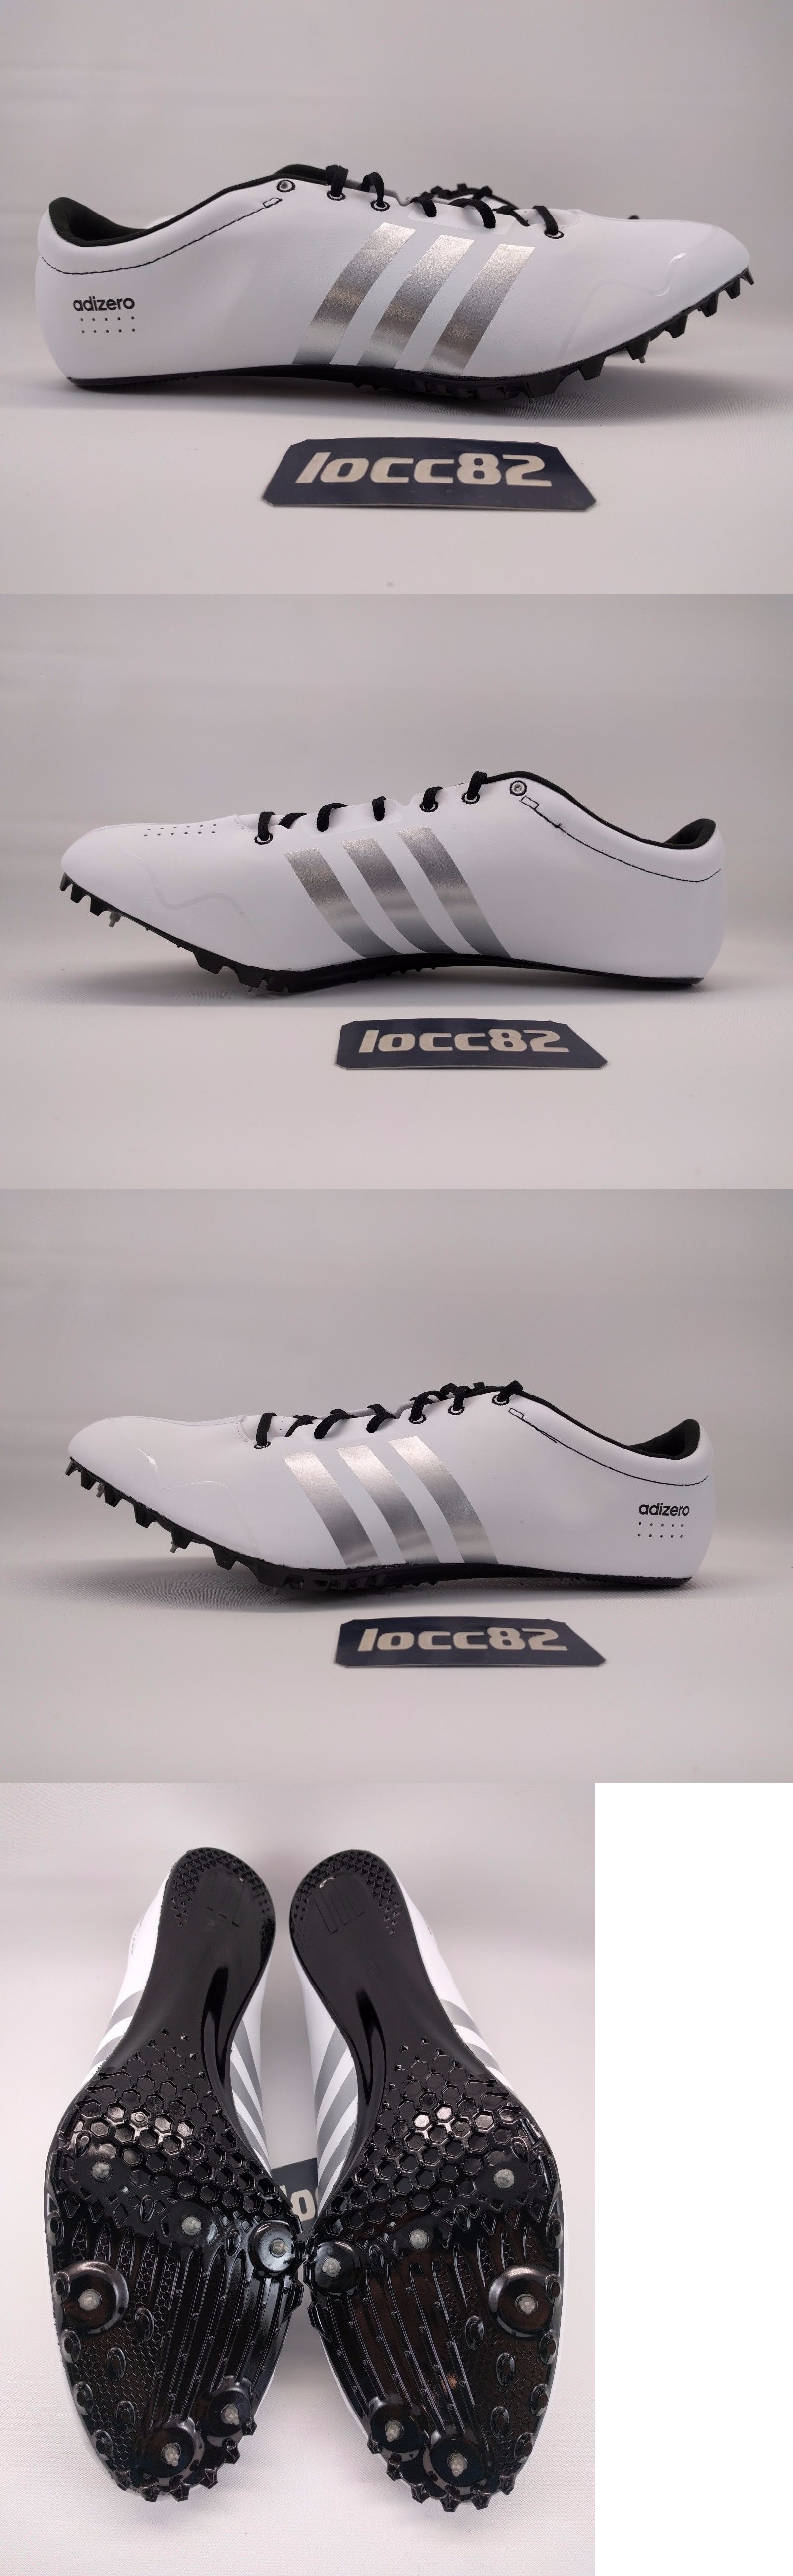 meet eb574 57f69 Track and Field 106981 Adidas Mens Adizero Prime Sp Sprint Track Spikes Sz  11 (S80335) White Black BUY IT NOW ONLY 69.99